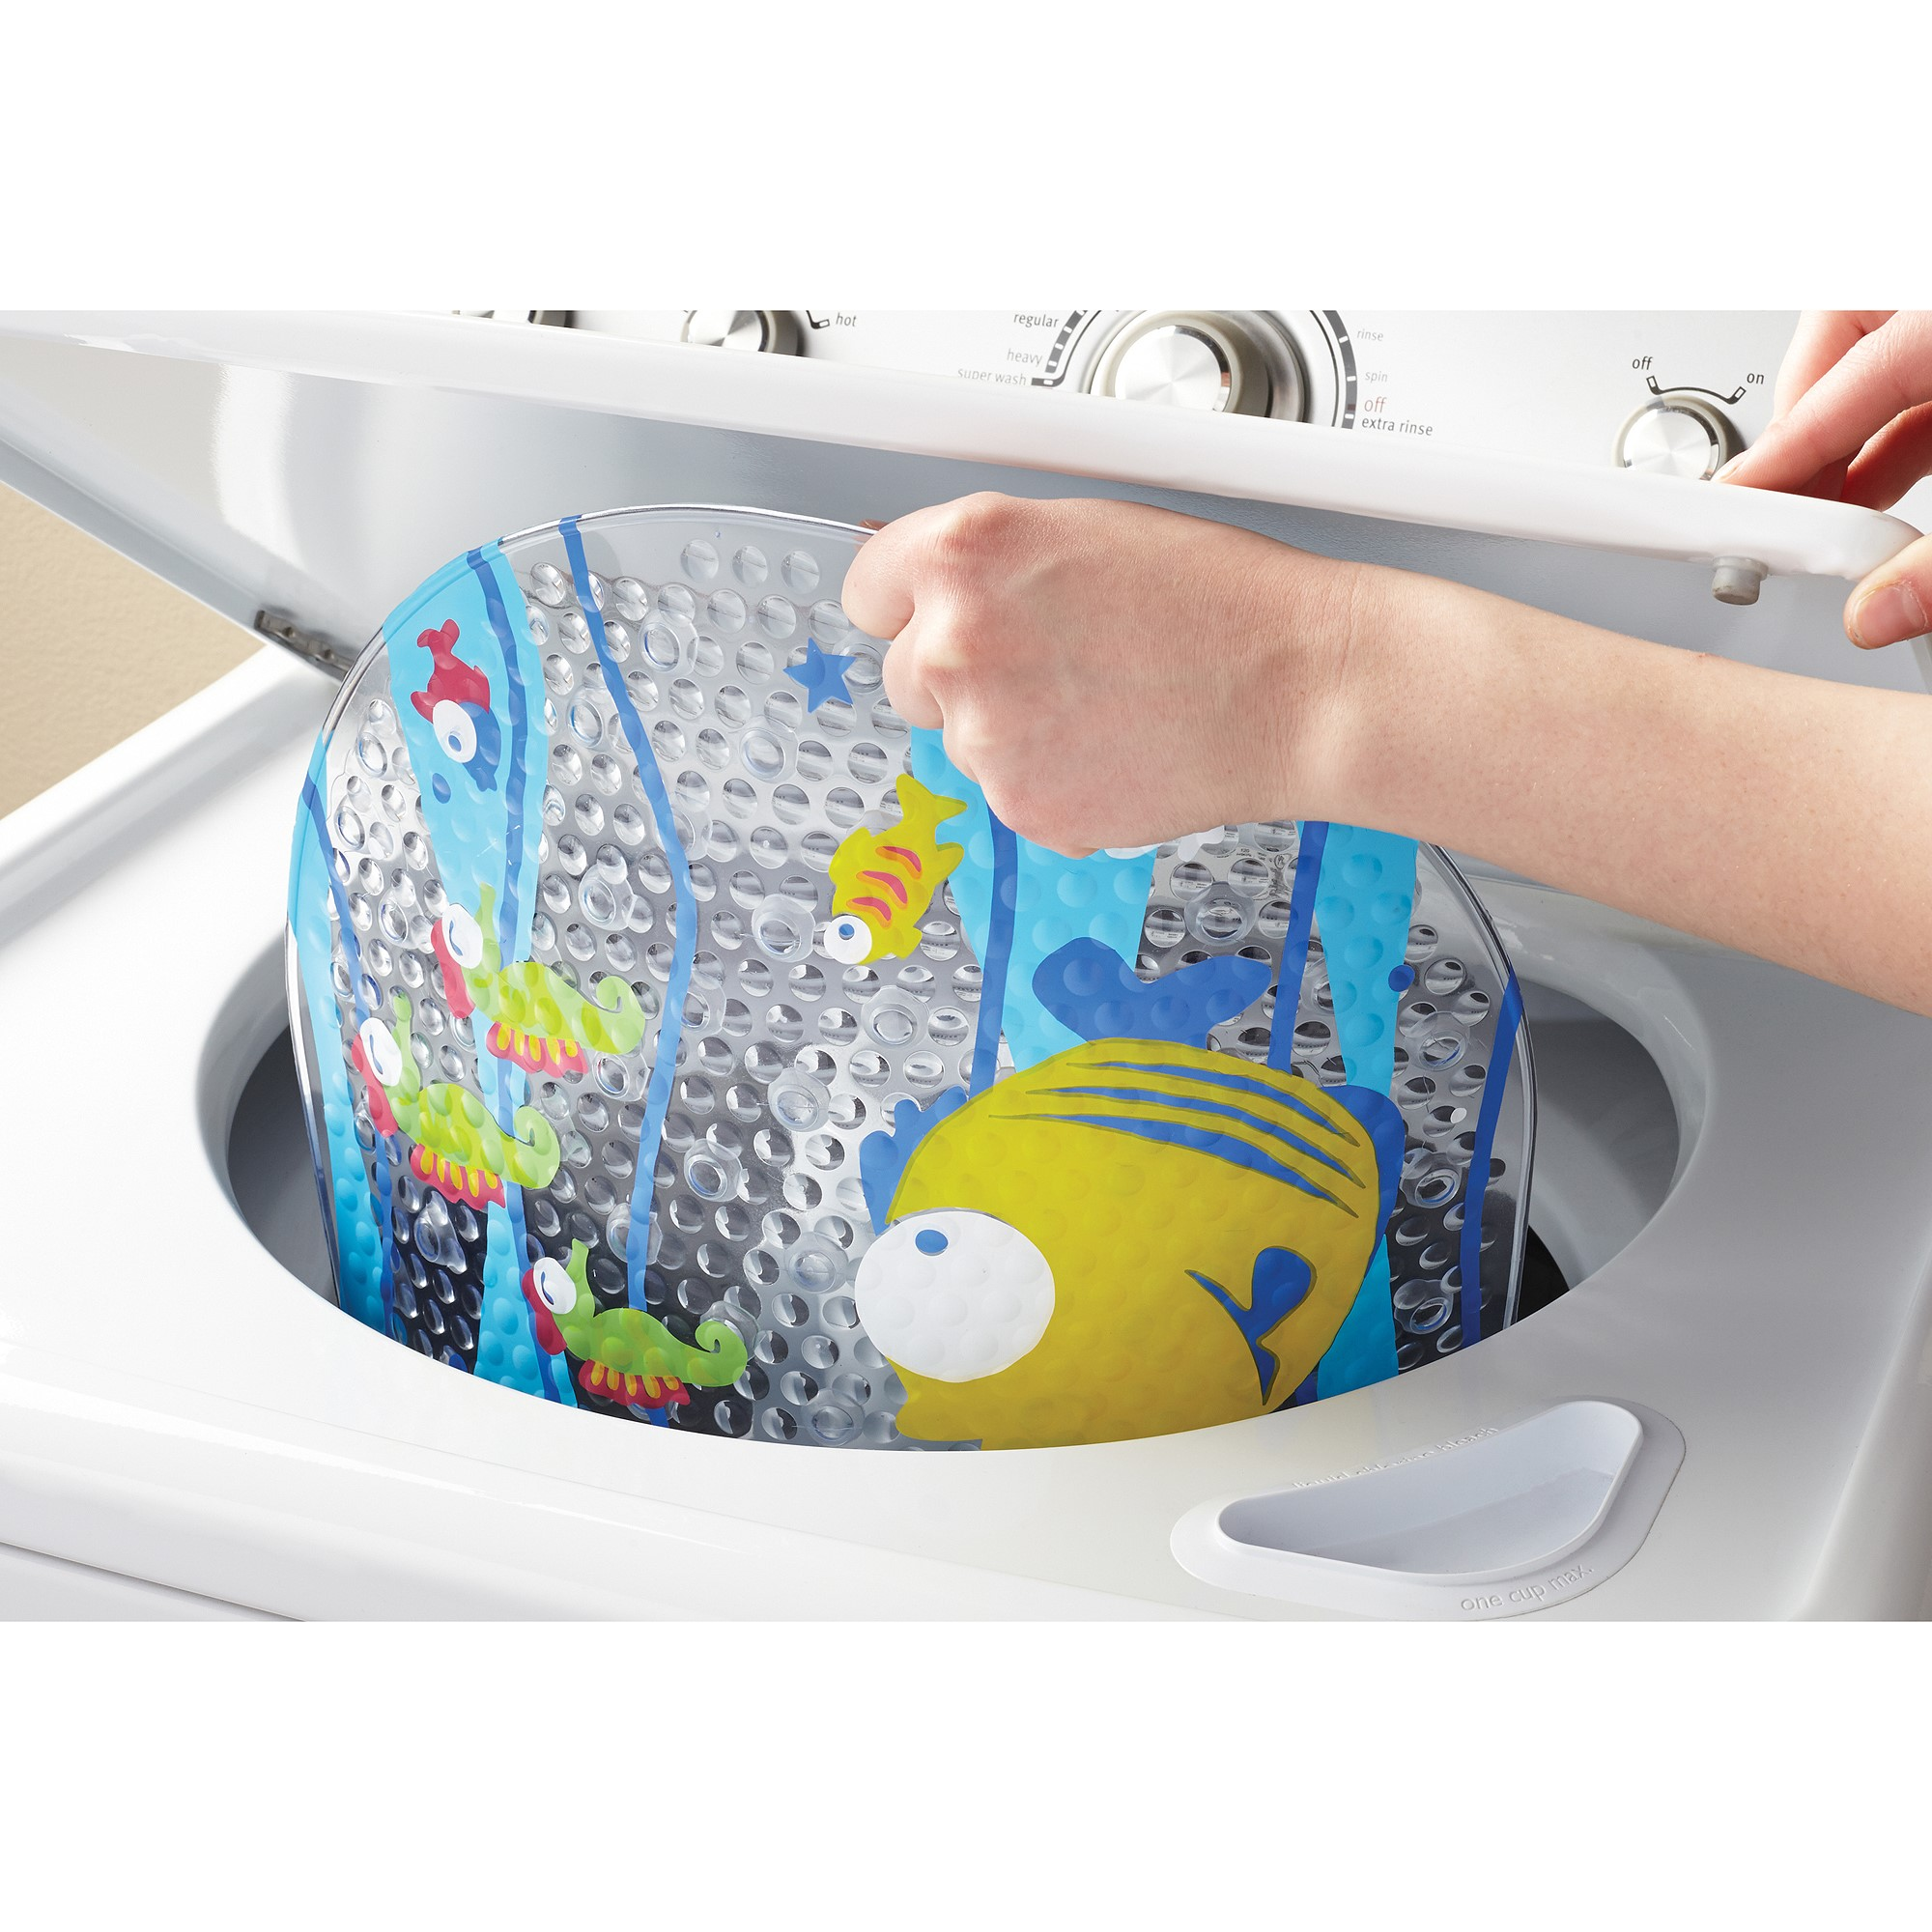 Mainstays Fish Bathtub Mat